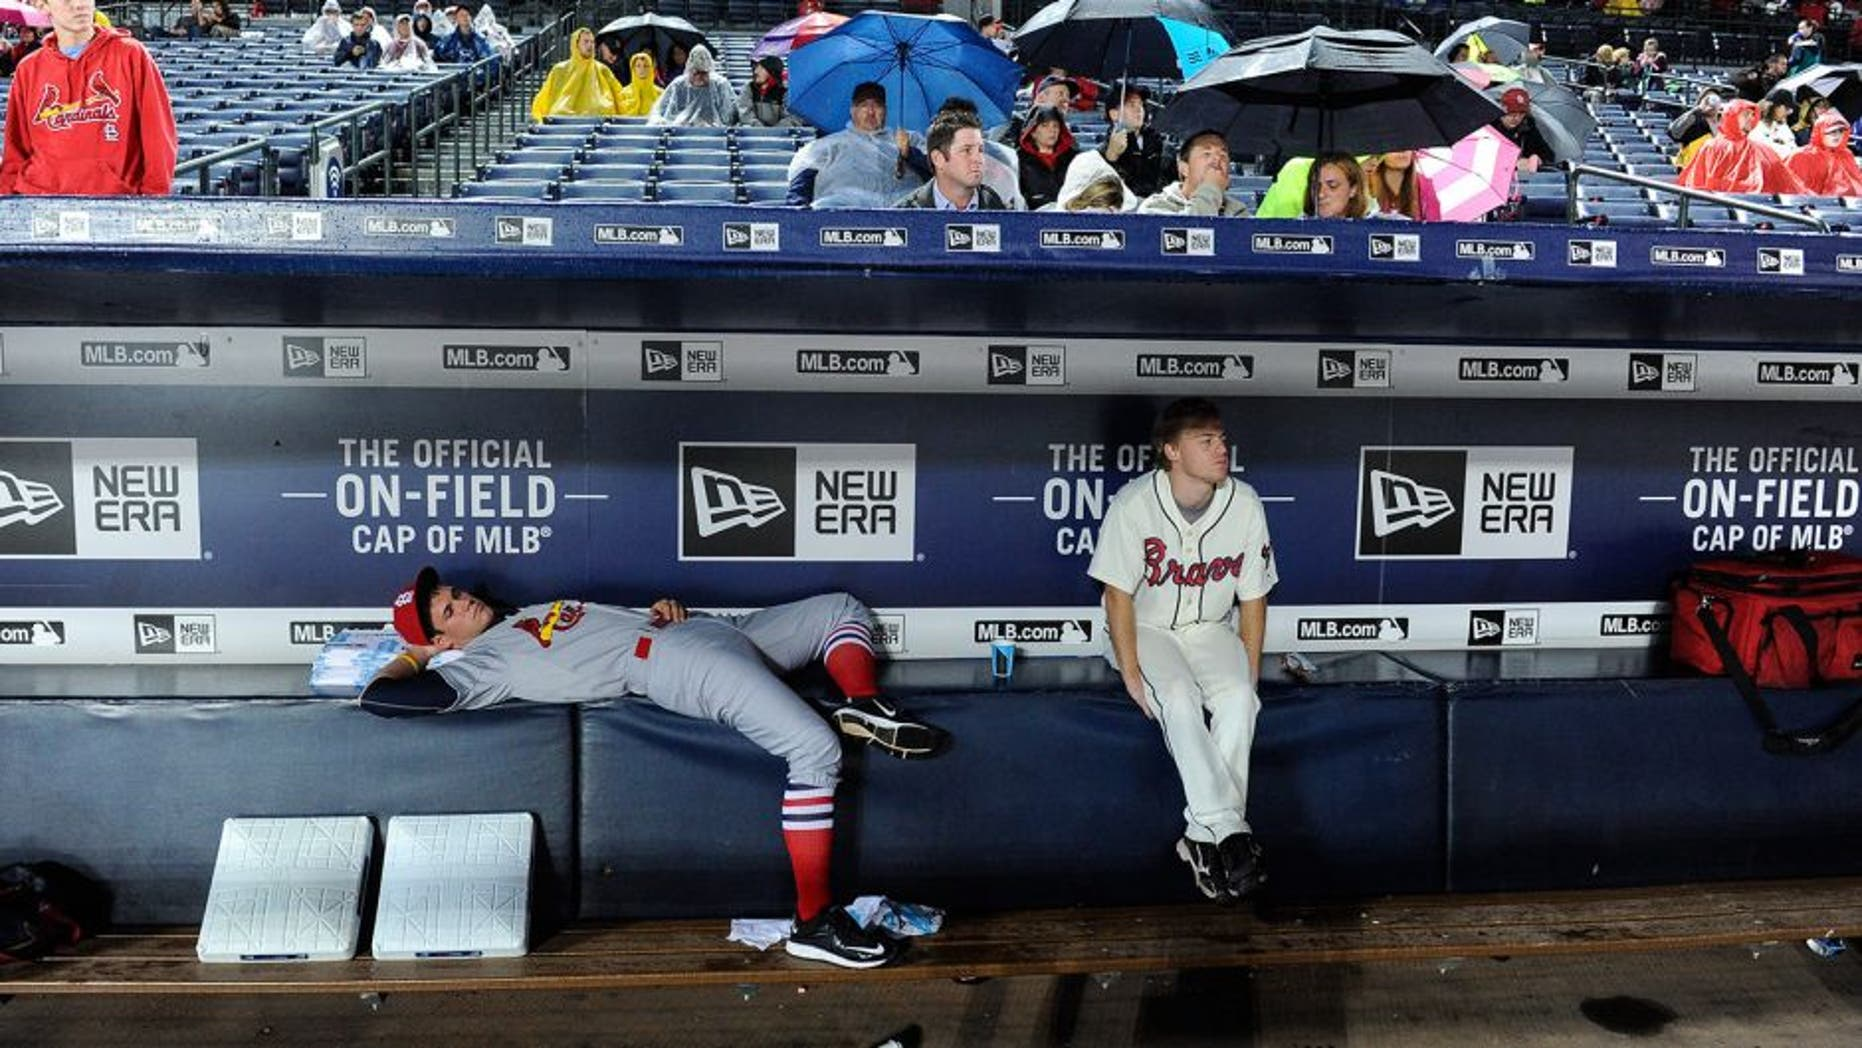 Bat boys wait out a weather-delayed start to the Atlanta Braves against the St. Louis Cardinals baseball game, Saturday, Oct. 3, 2015, in Atlanta. (AP Photo/John Amis)